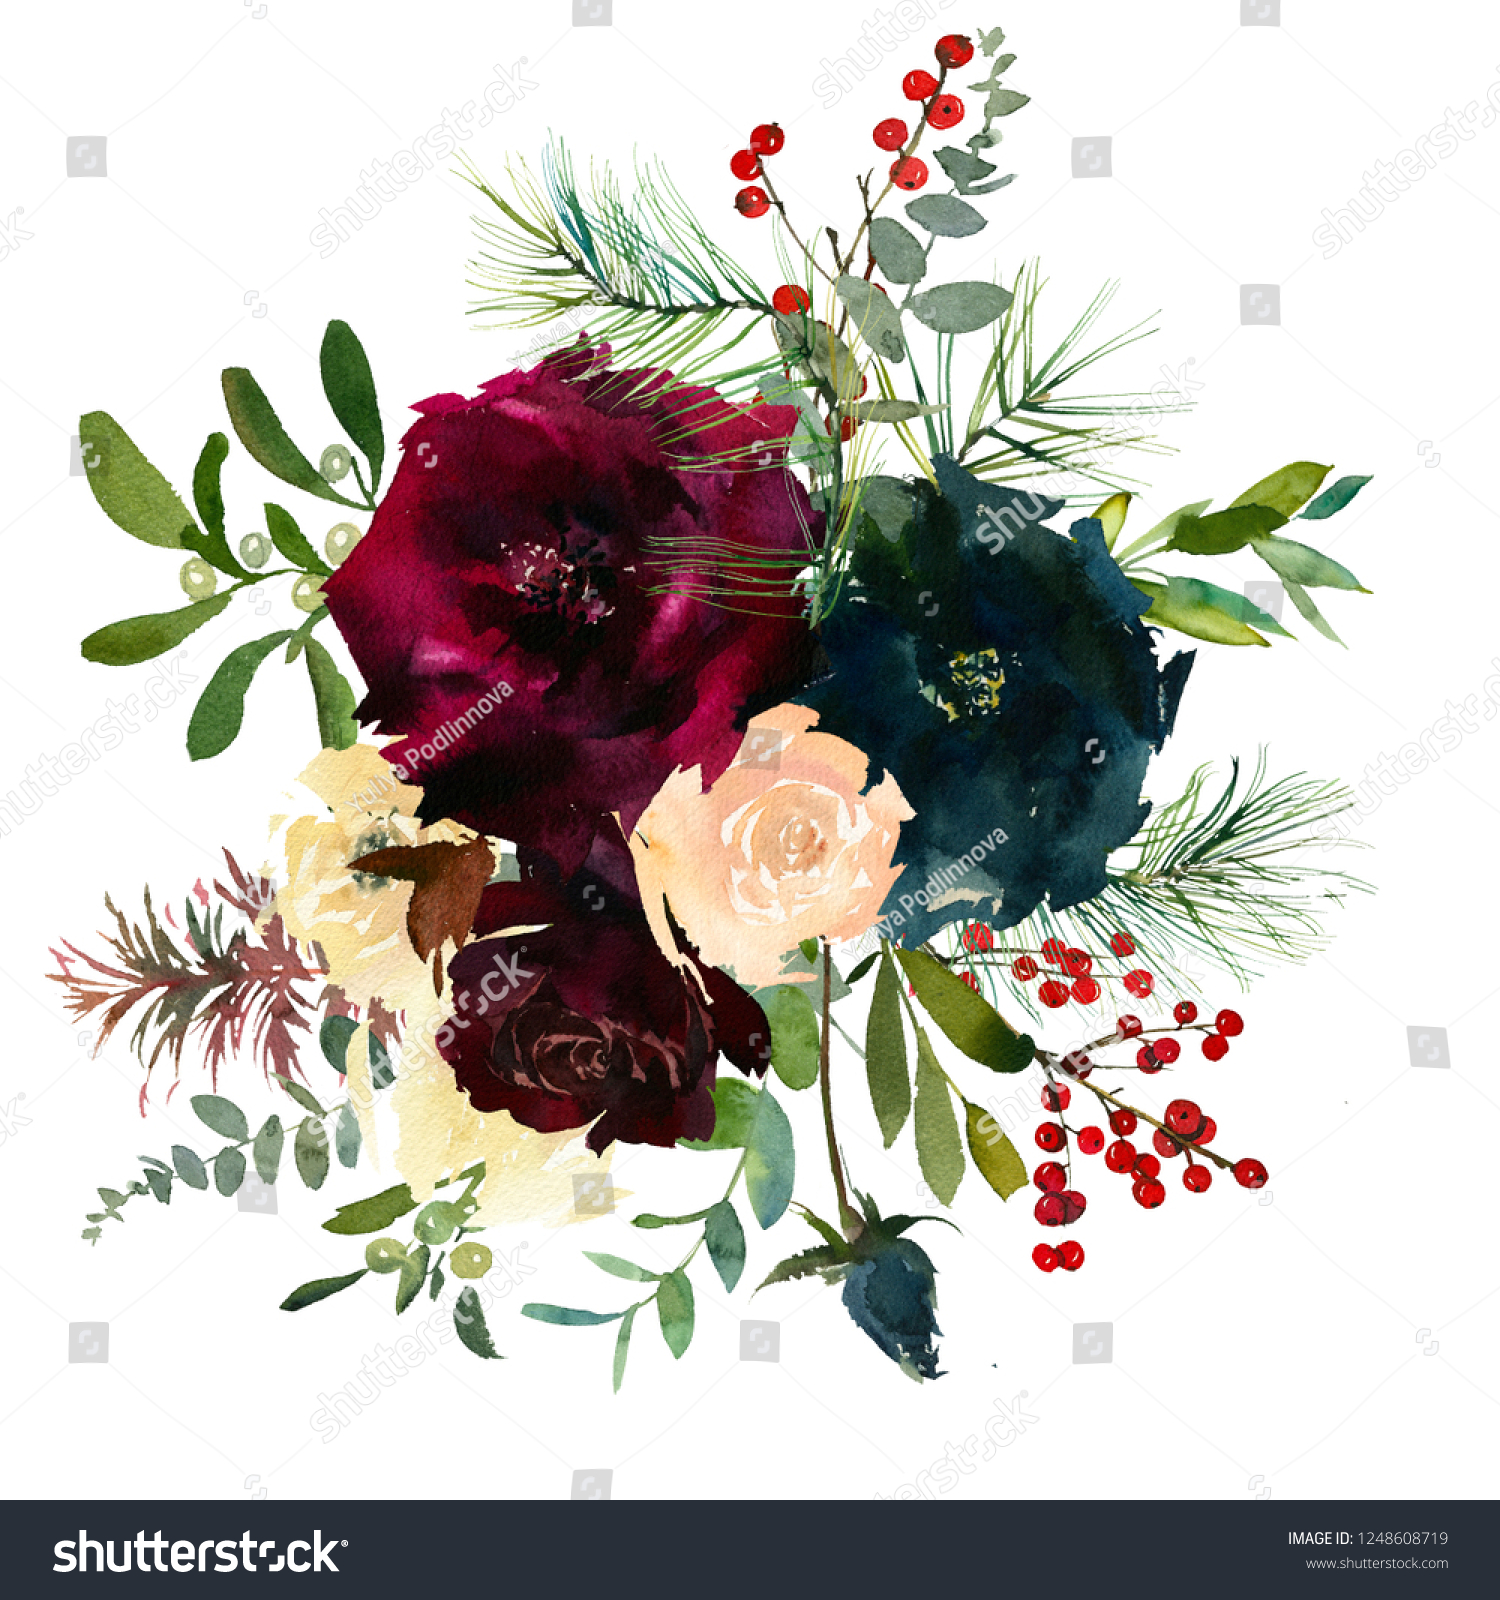 Burgundy White Navy Blue Watercolor Floral Stock Illustration 1248608719